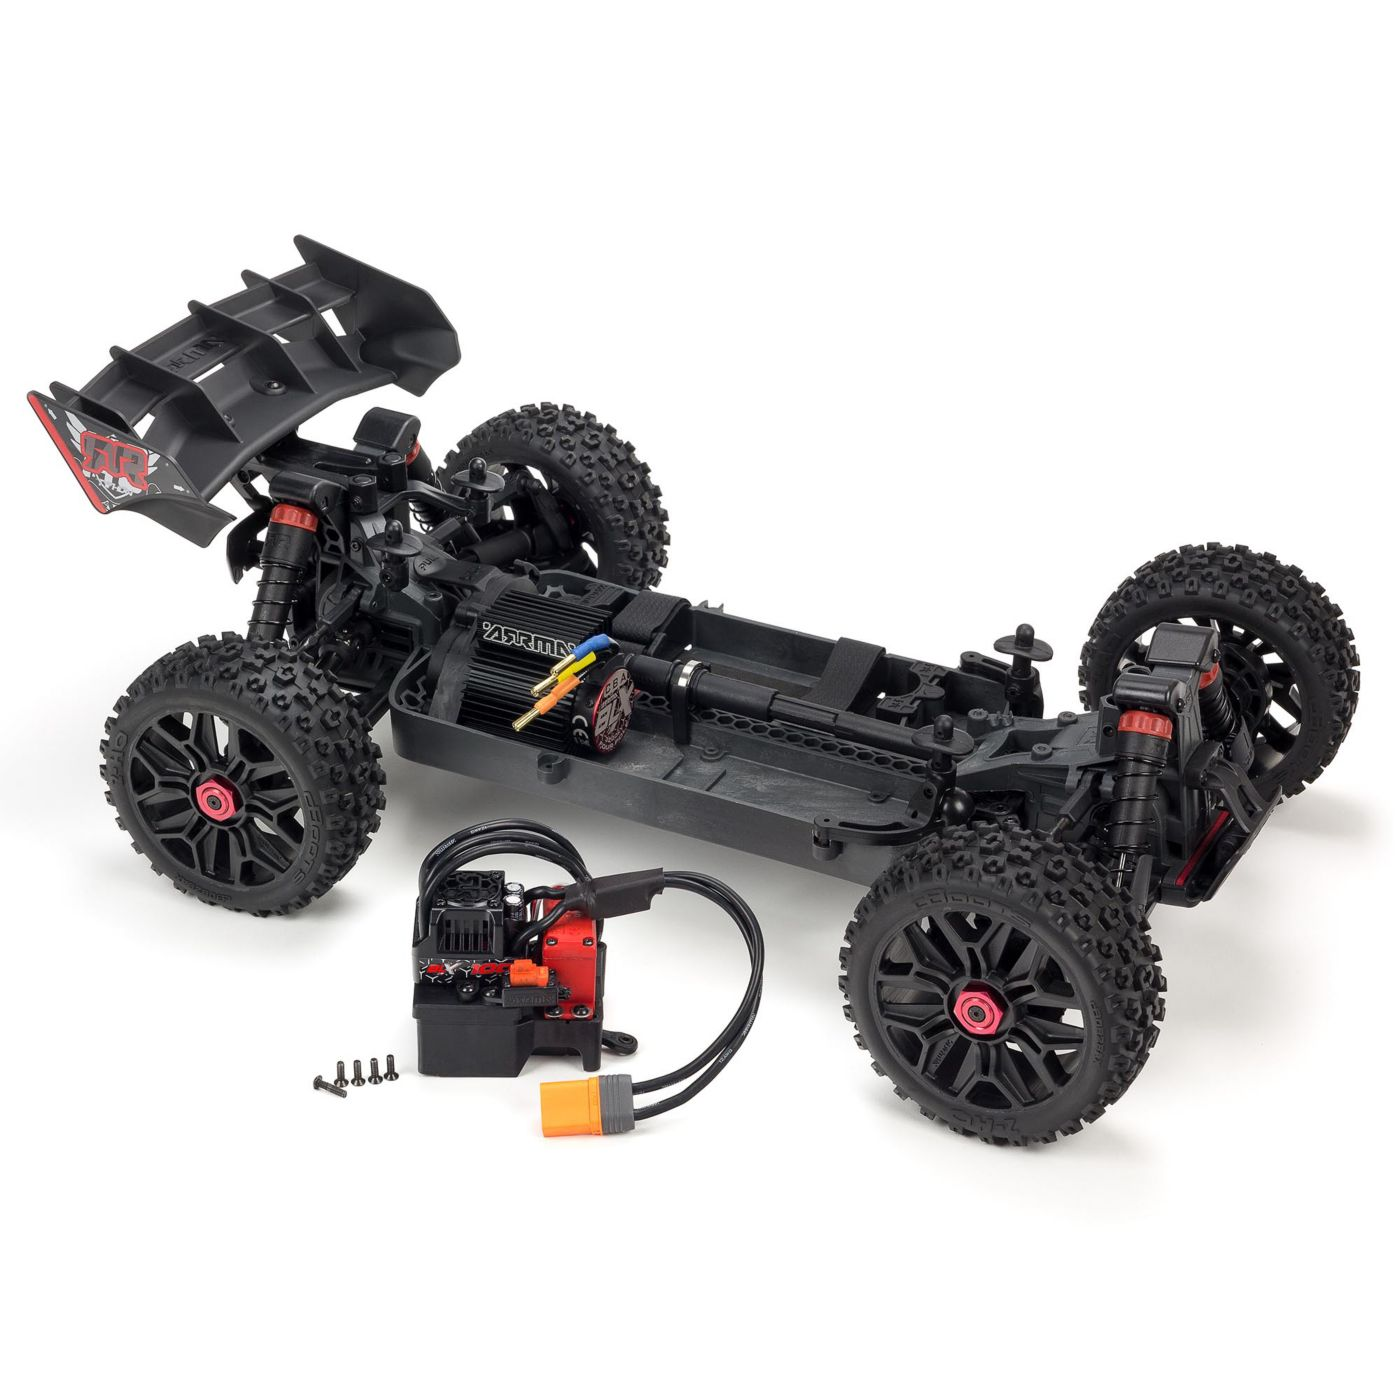 Arrma Typhon 3s Brushless 4wd Buggy rtr 5